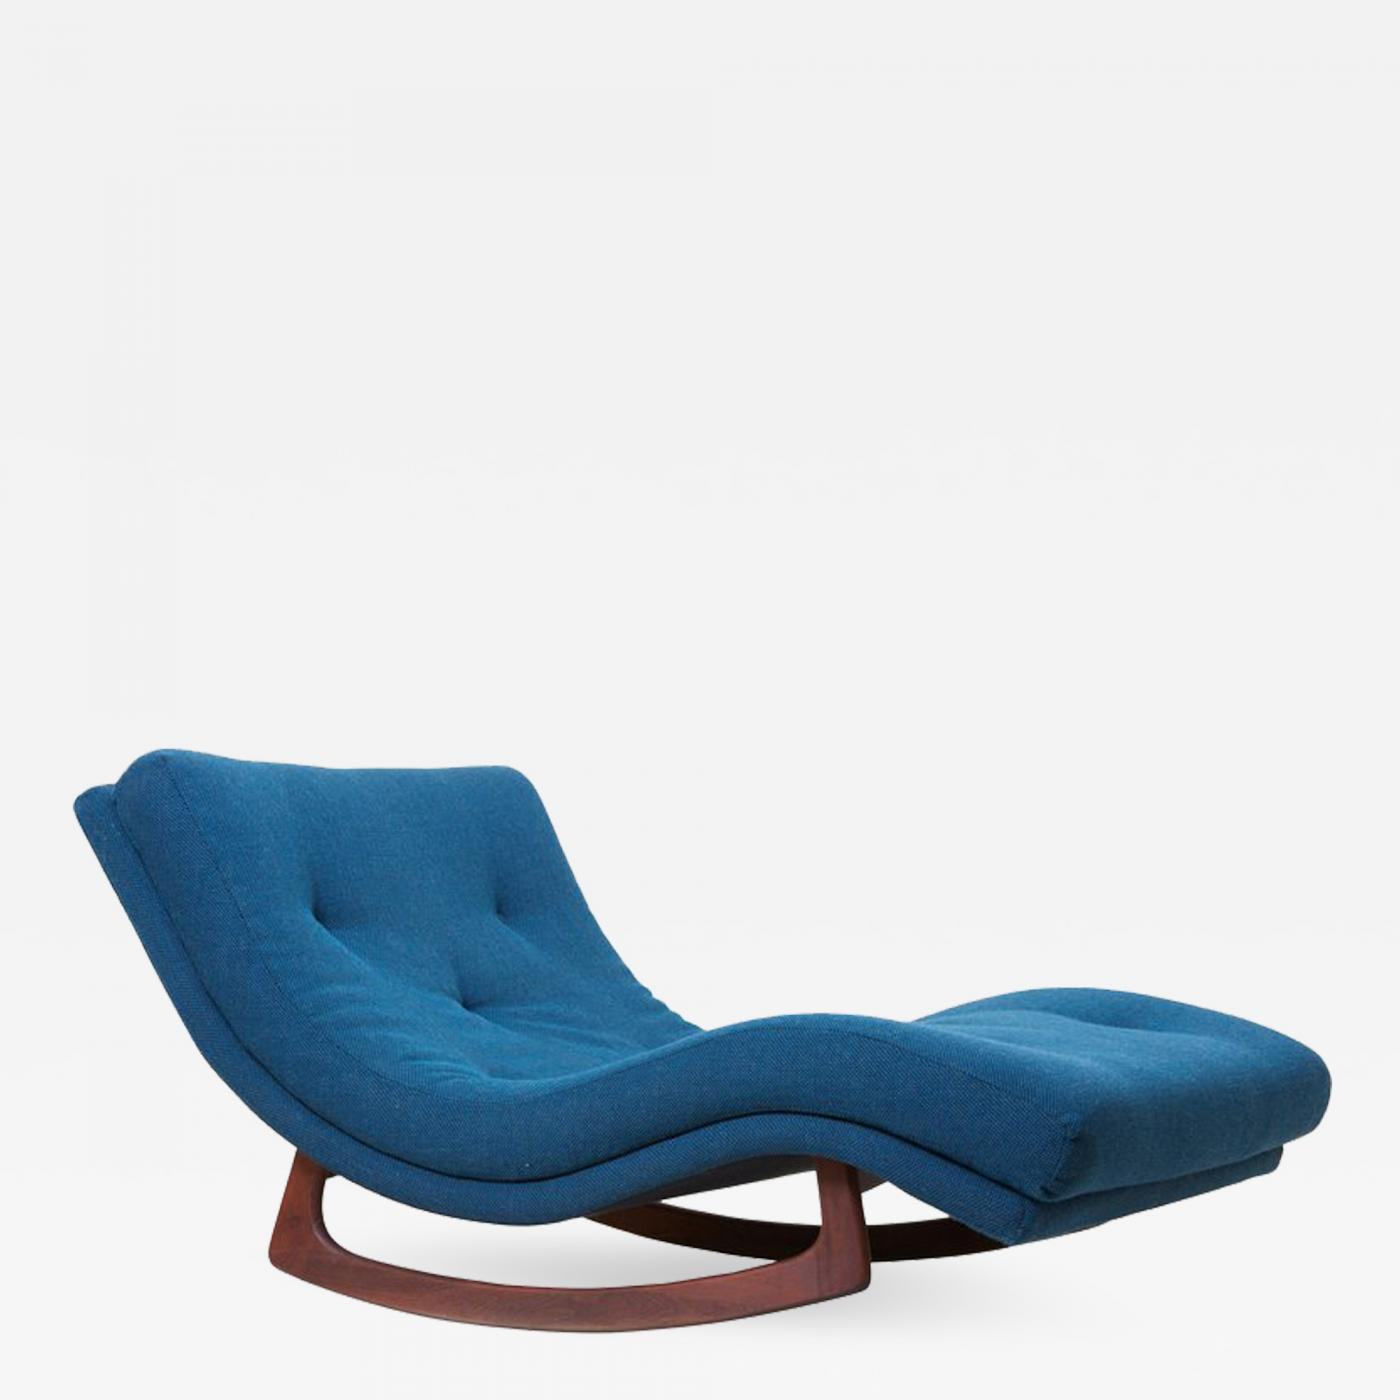 Brilliant Adrian Pearsall Signed Adrian Pearsall Rocking Chaise In Kvadrat Fabric Forskolin Free Trial Chair Design Images Forskolin Free Trialorg